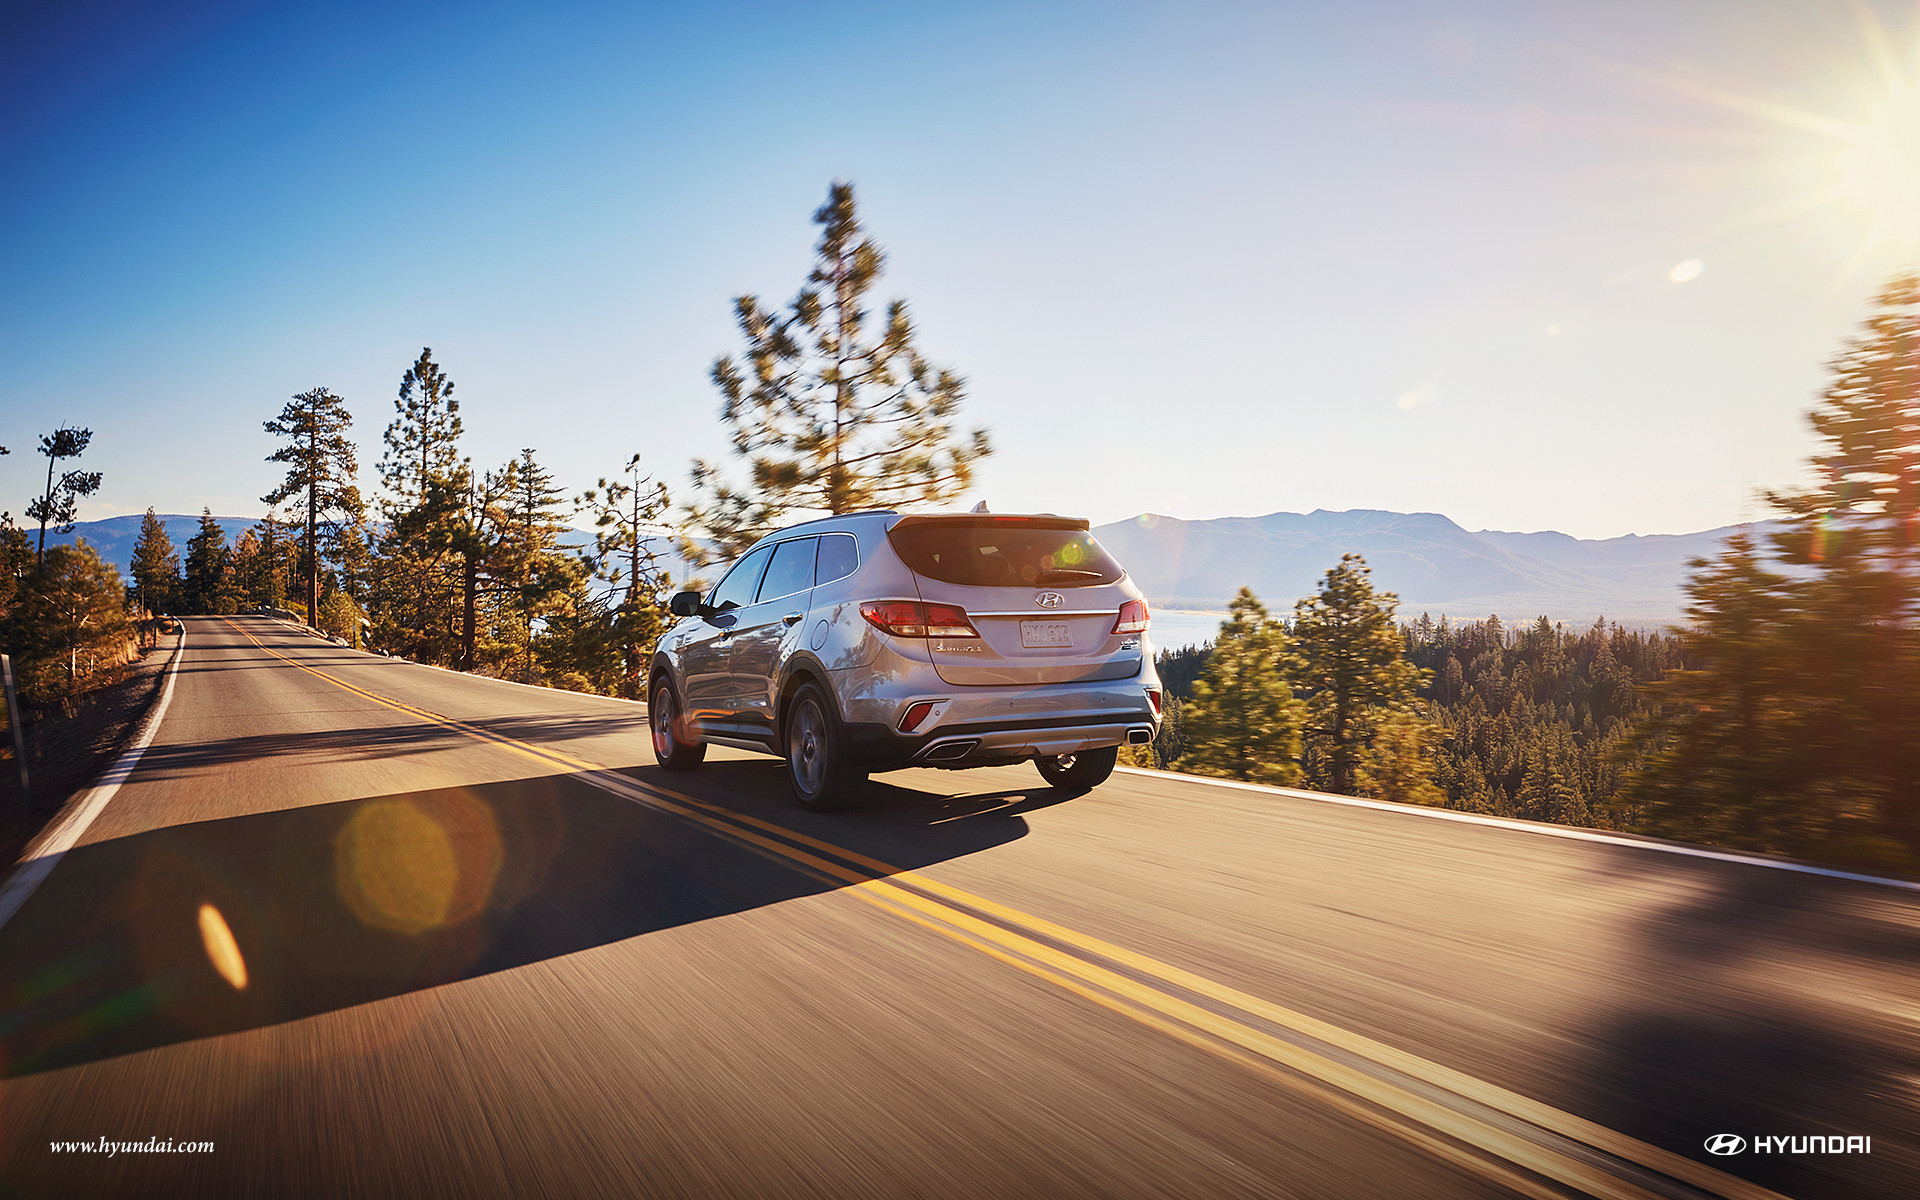 People Will Notice the Hyundai Santa Fe Coming and Going!